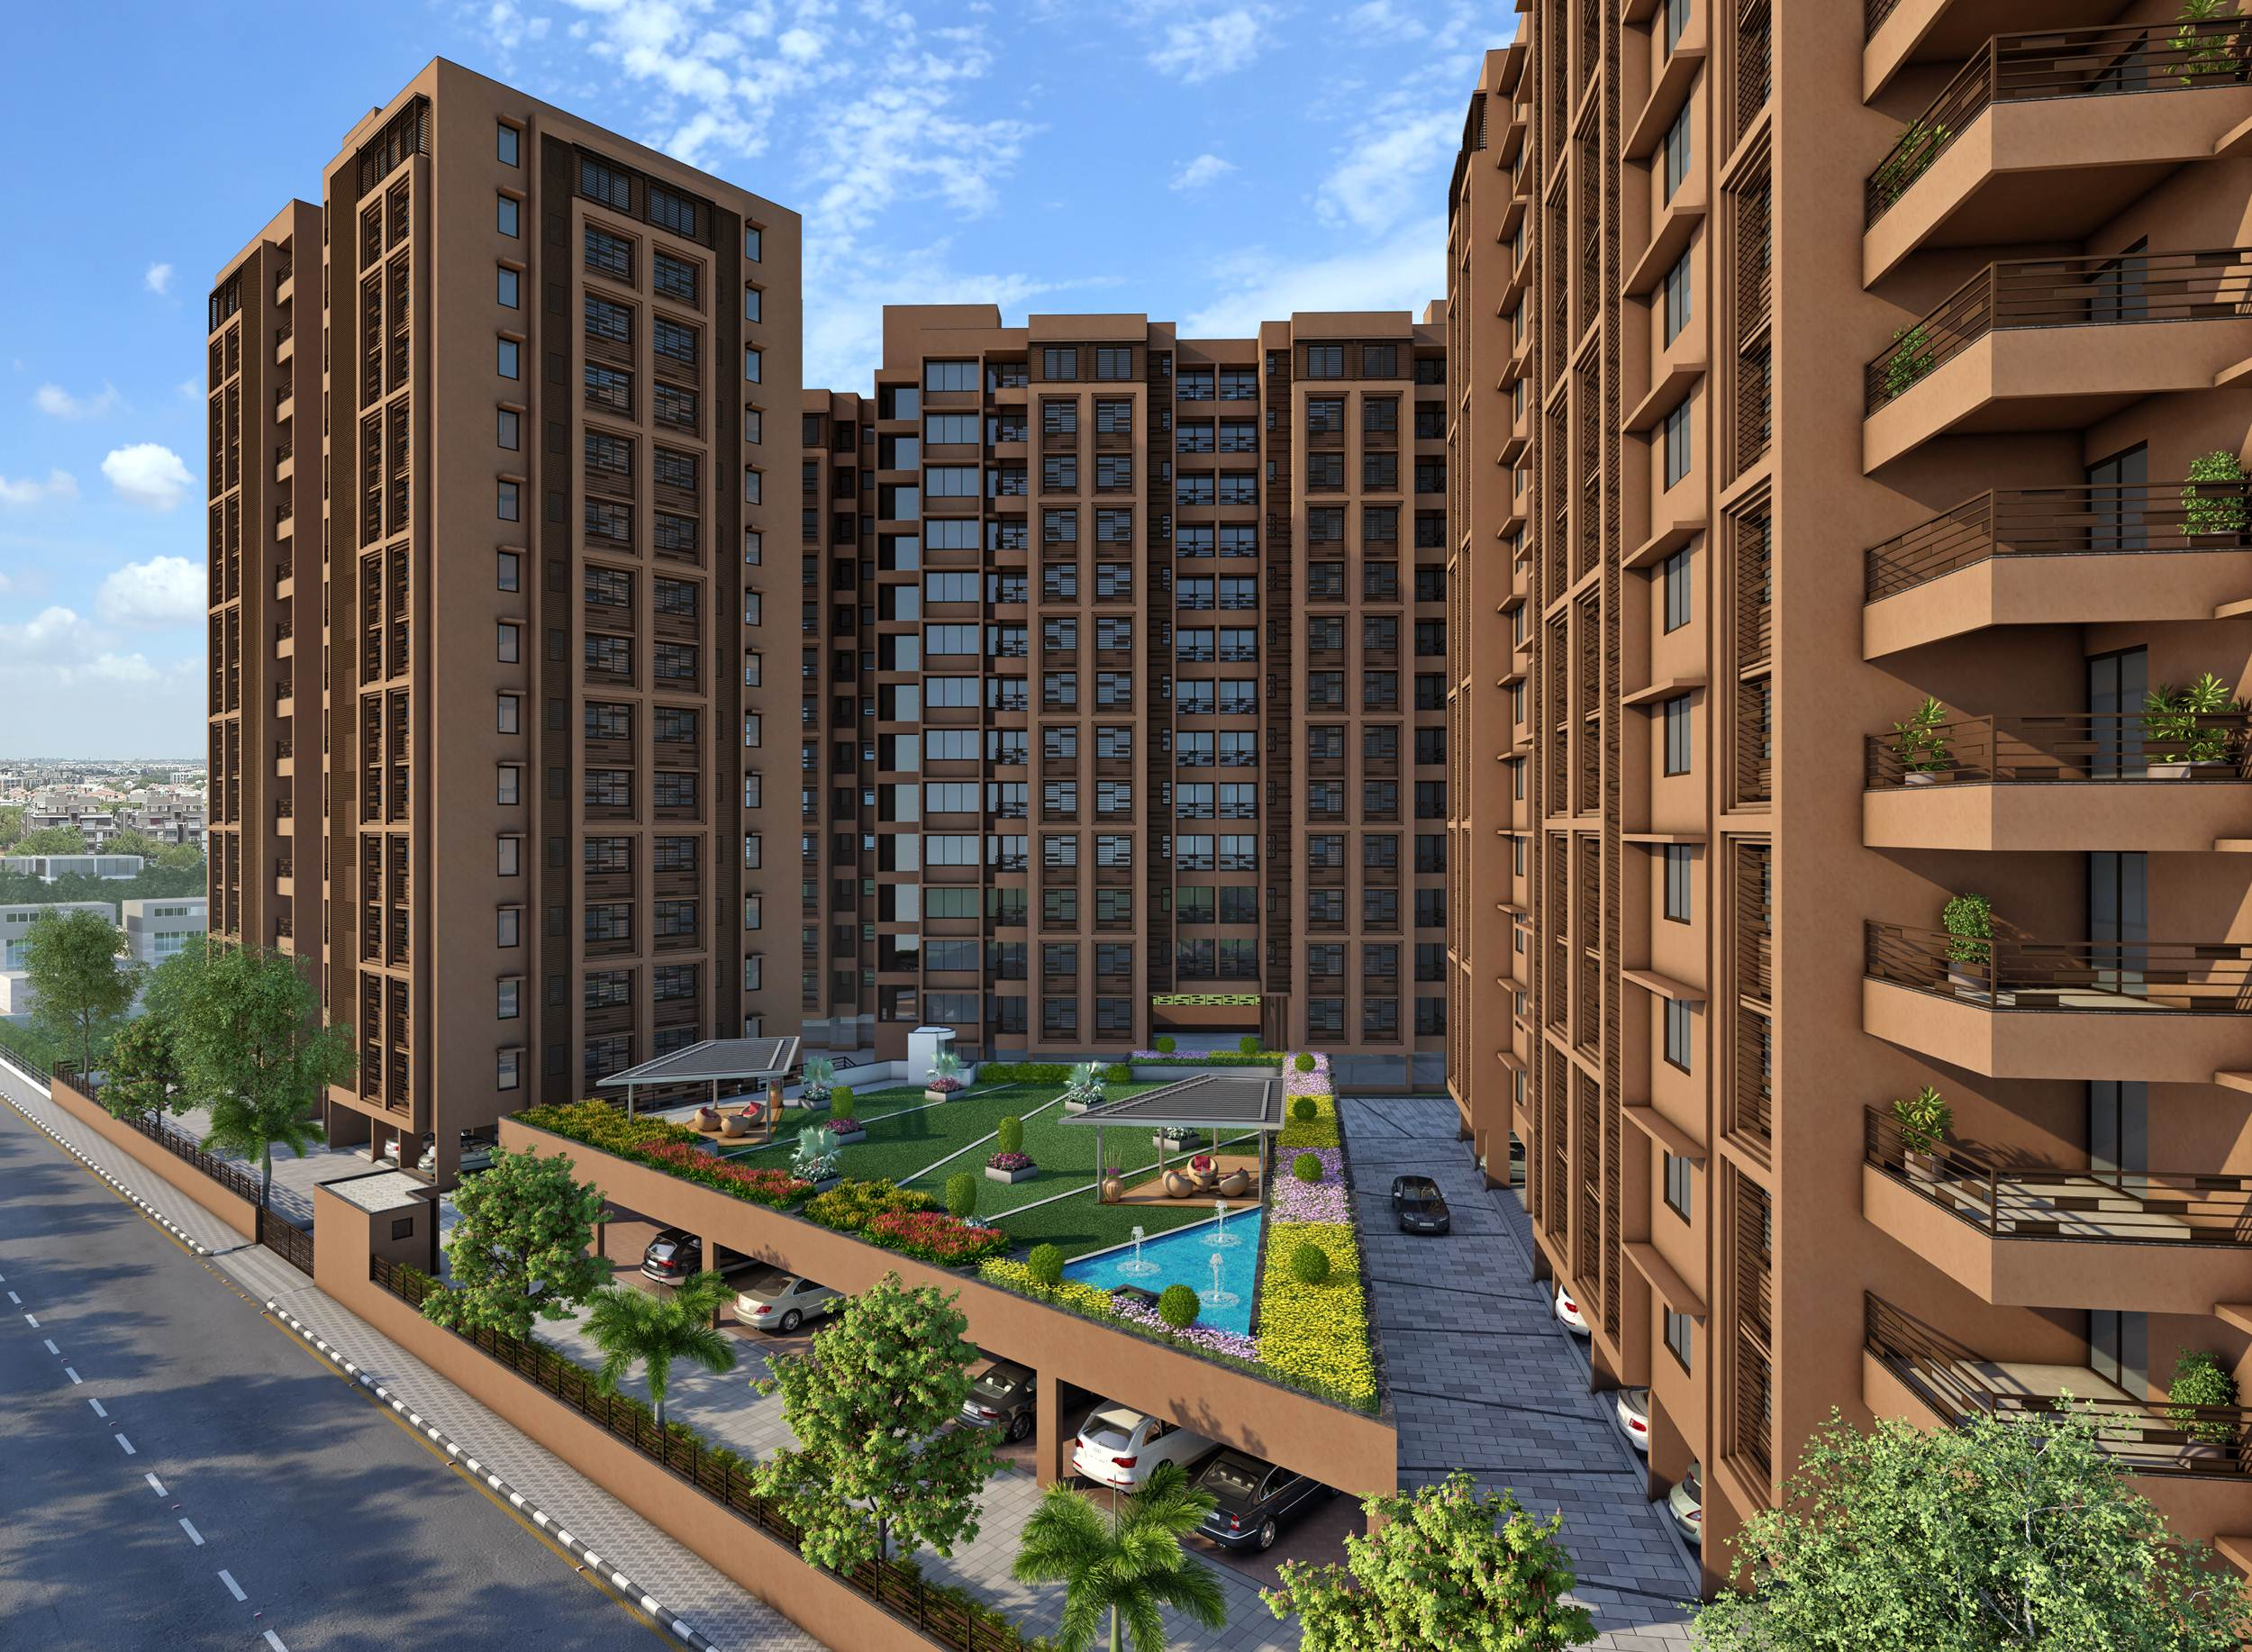 Pebble Bay 2 - 3 BHK Flats for Sale in Chandkheda, Ahmedabad